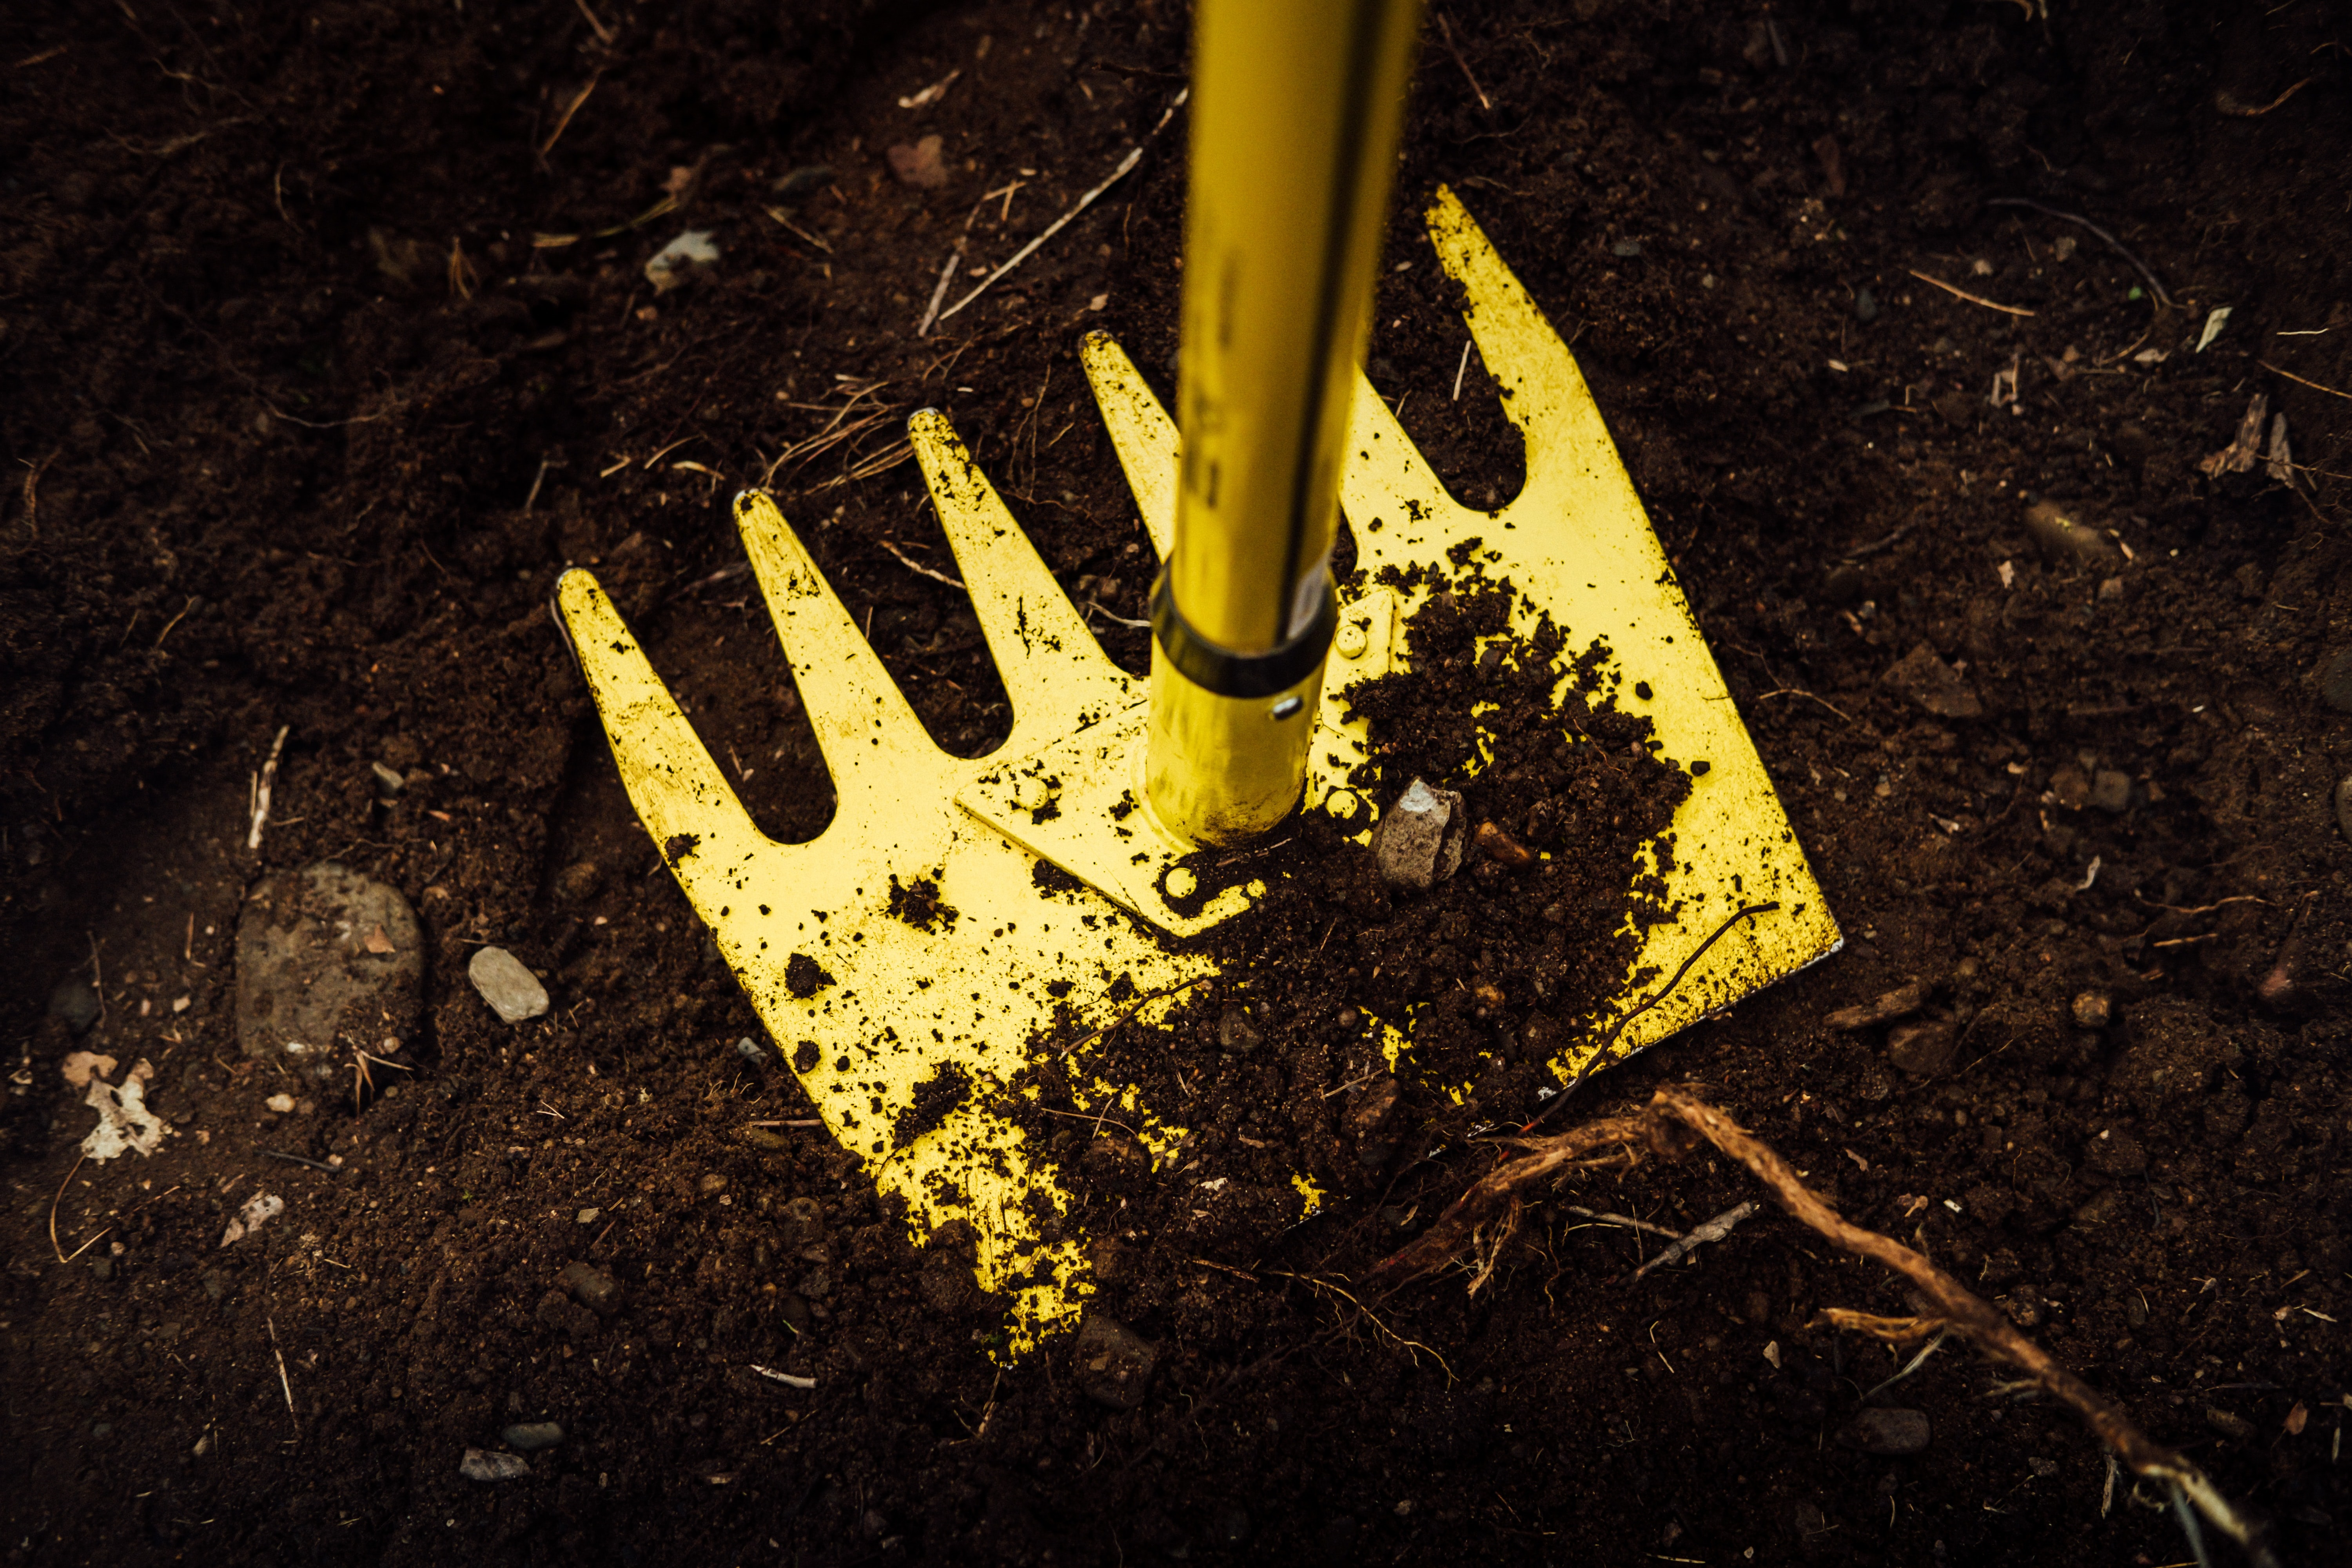 A yellow landscaping rake pressed into dark brown dirt